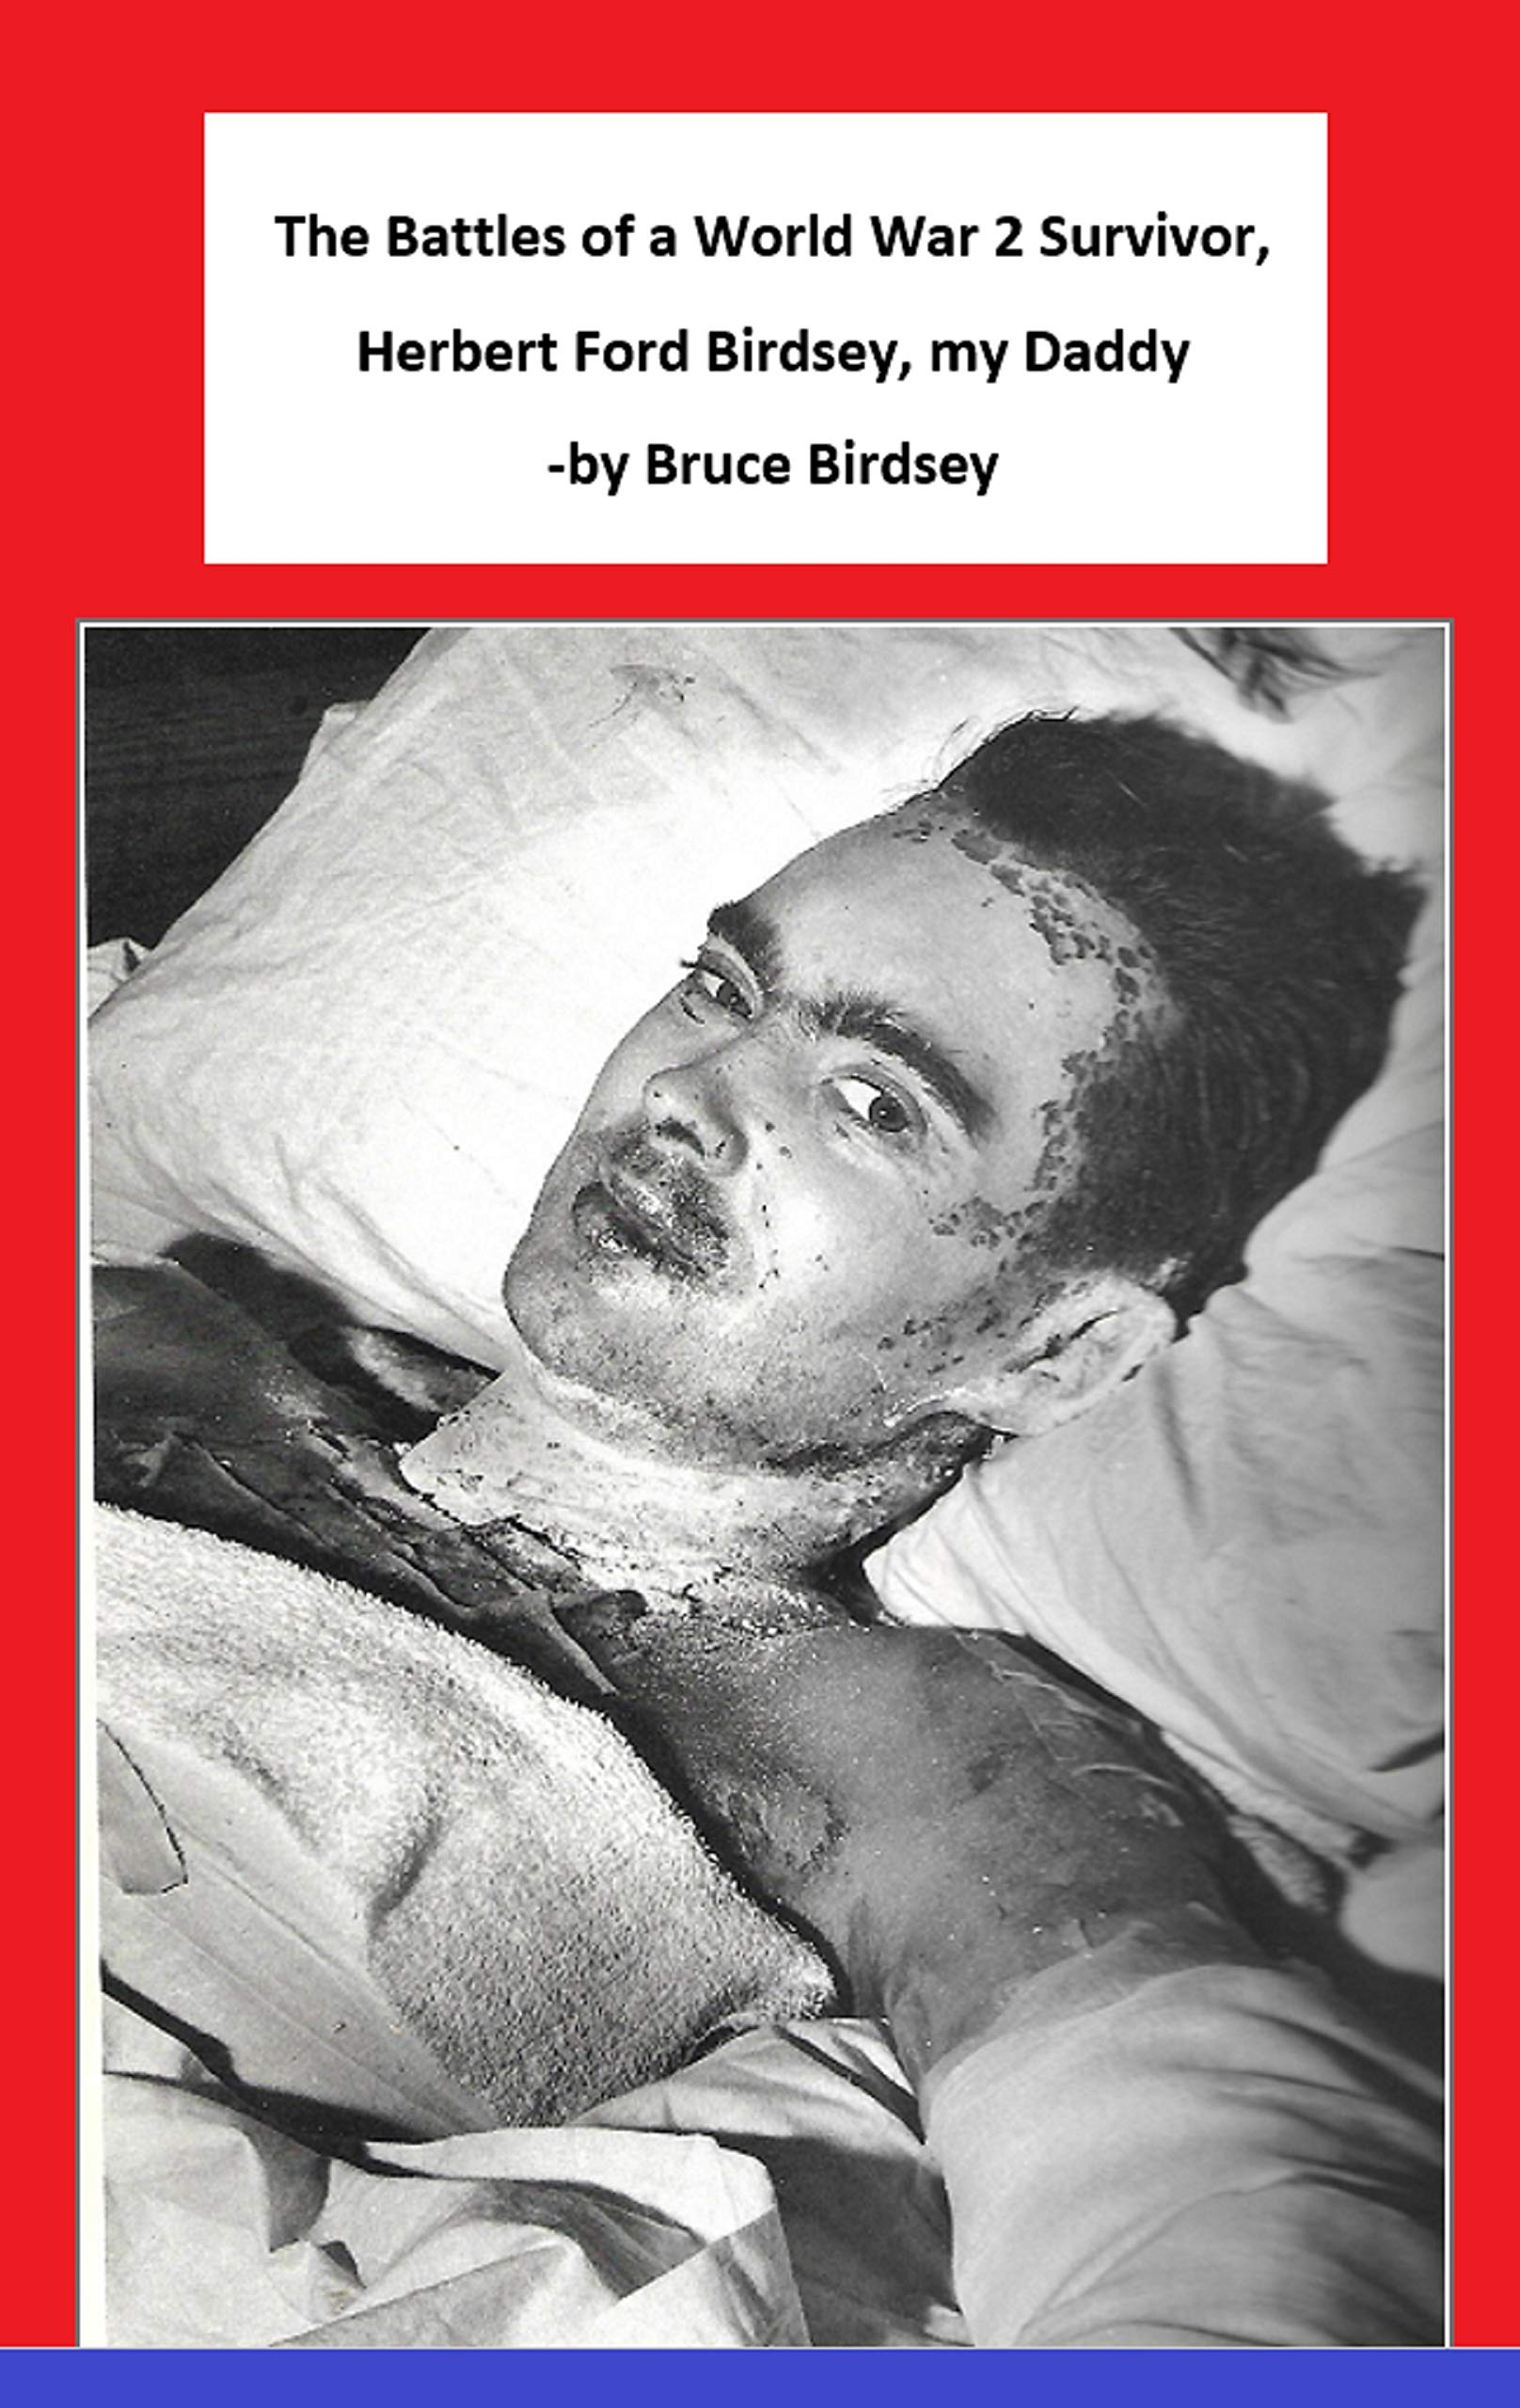 The Battles of a World War 2 Survivor, Herbert Ford Birdsey, my Daddy -by Bruce Birdsey